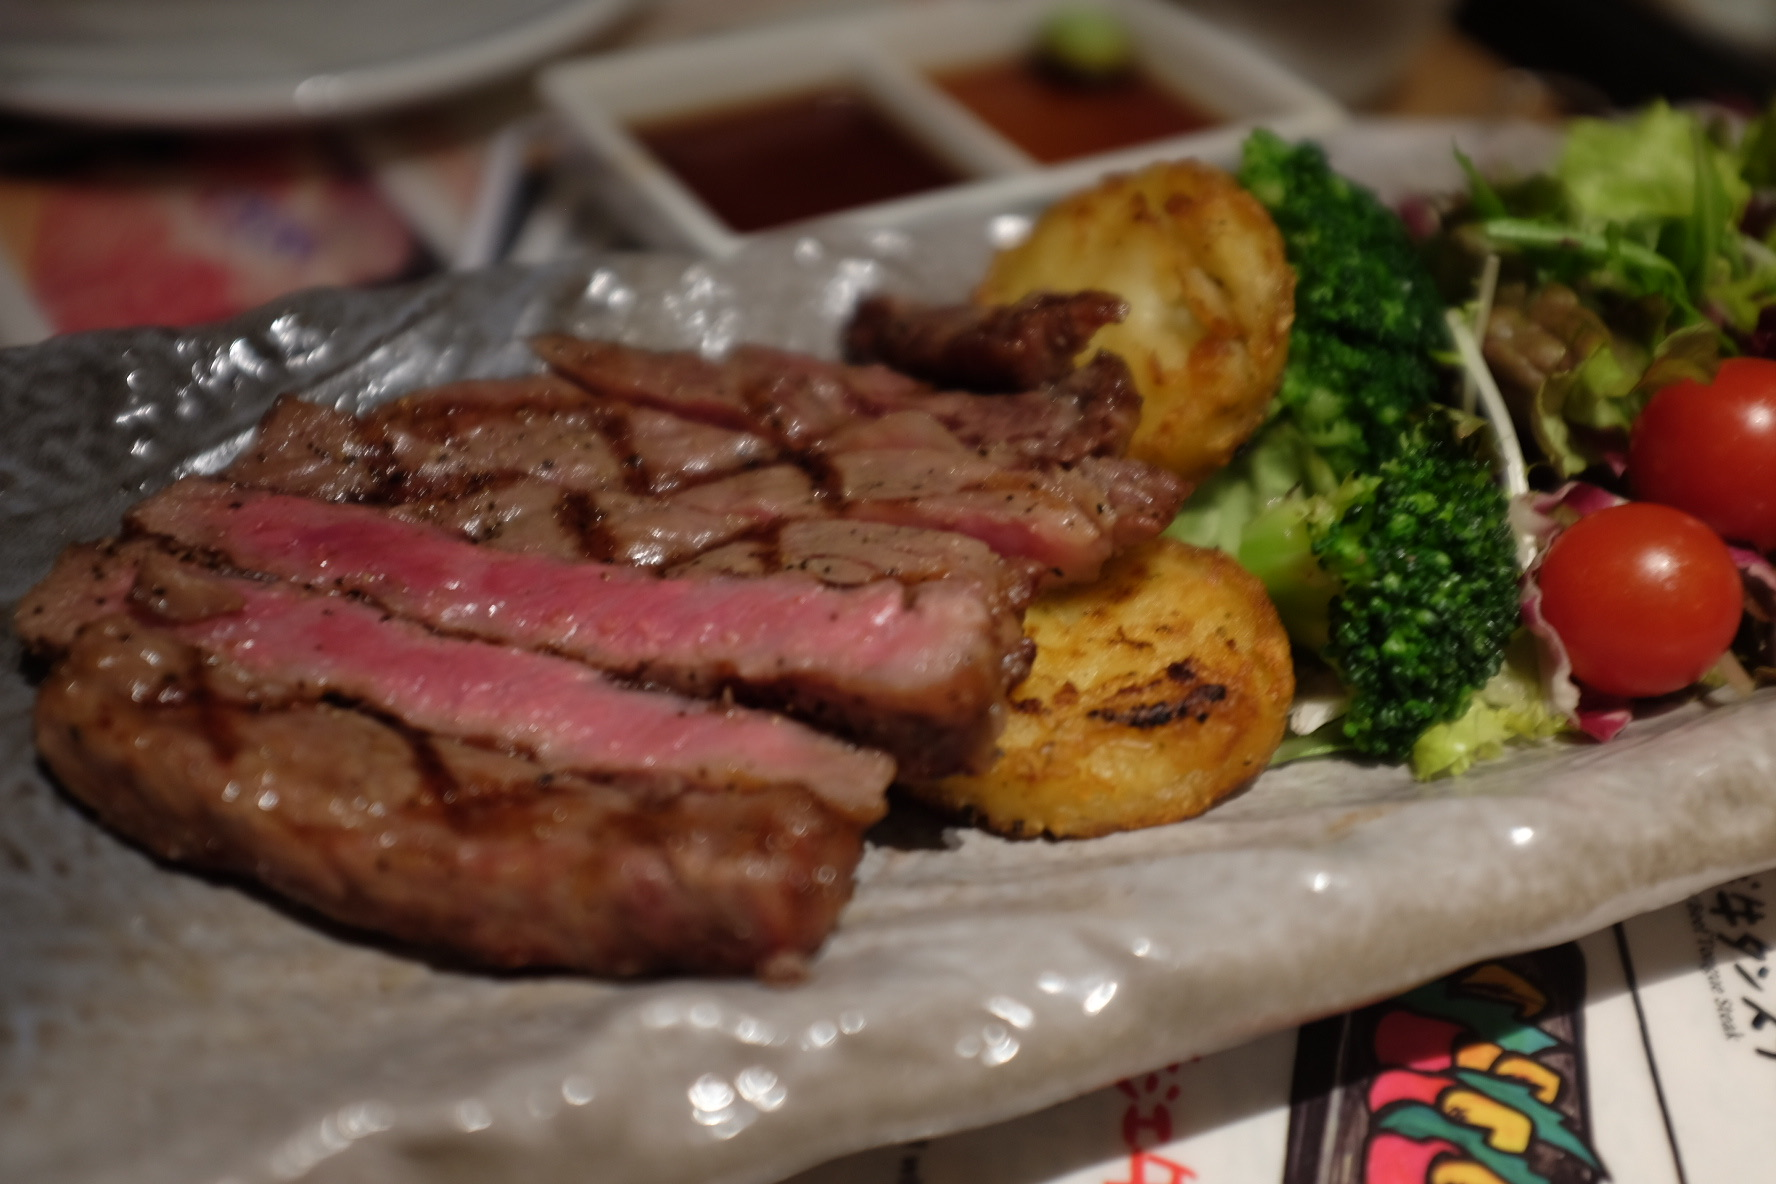 Kobe Beef steak at Kyoto. Around $150 for a single portion.